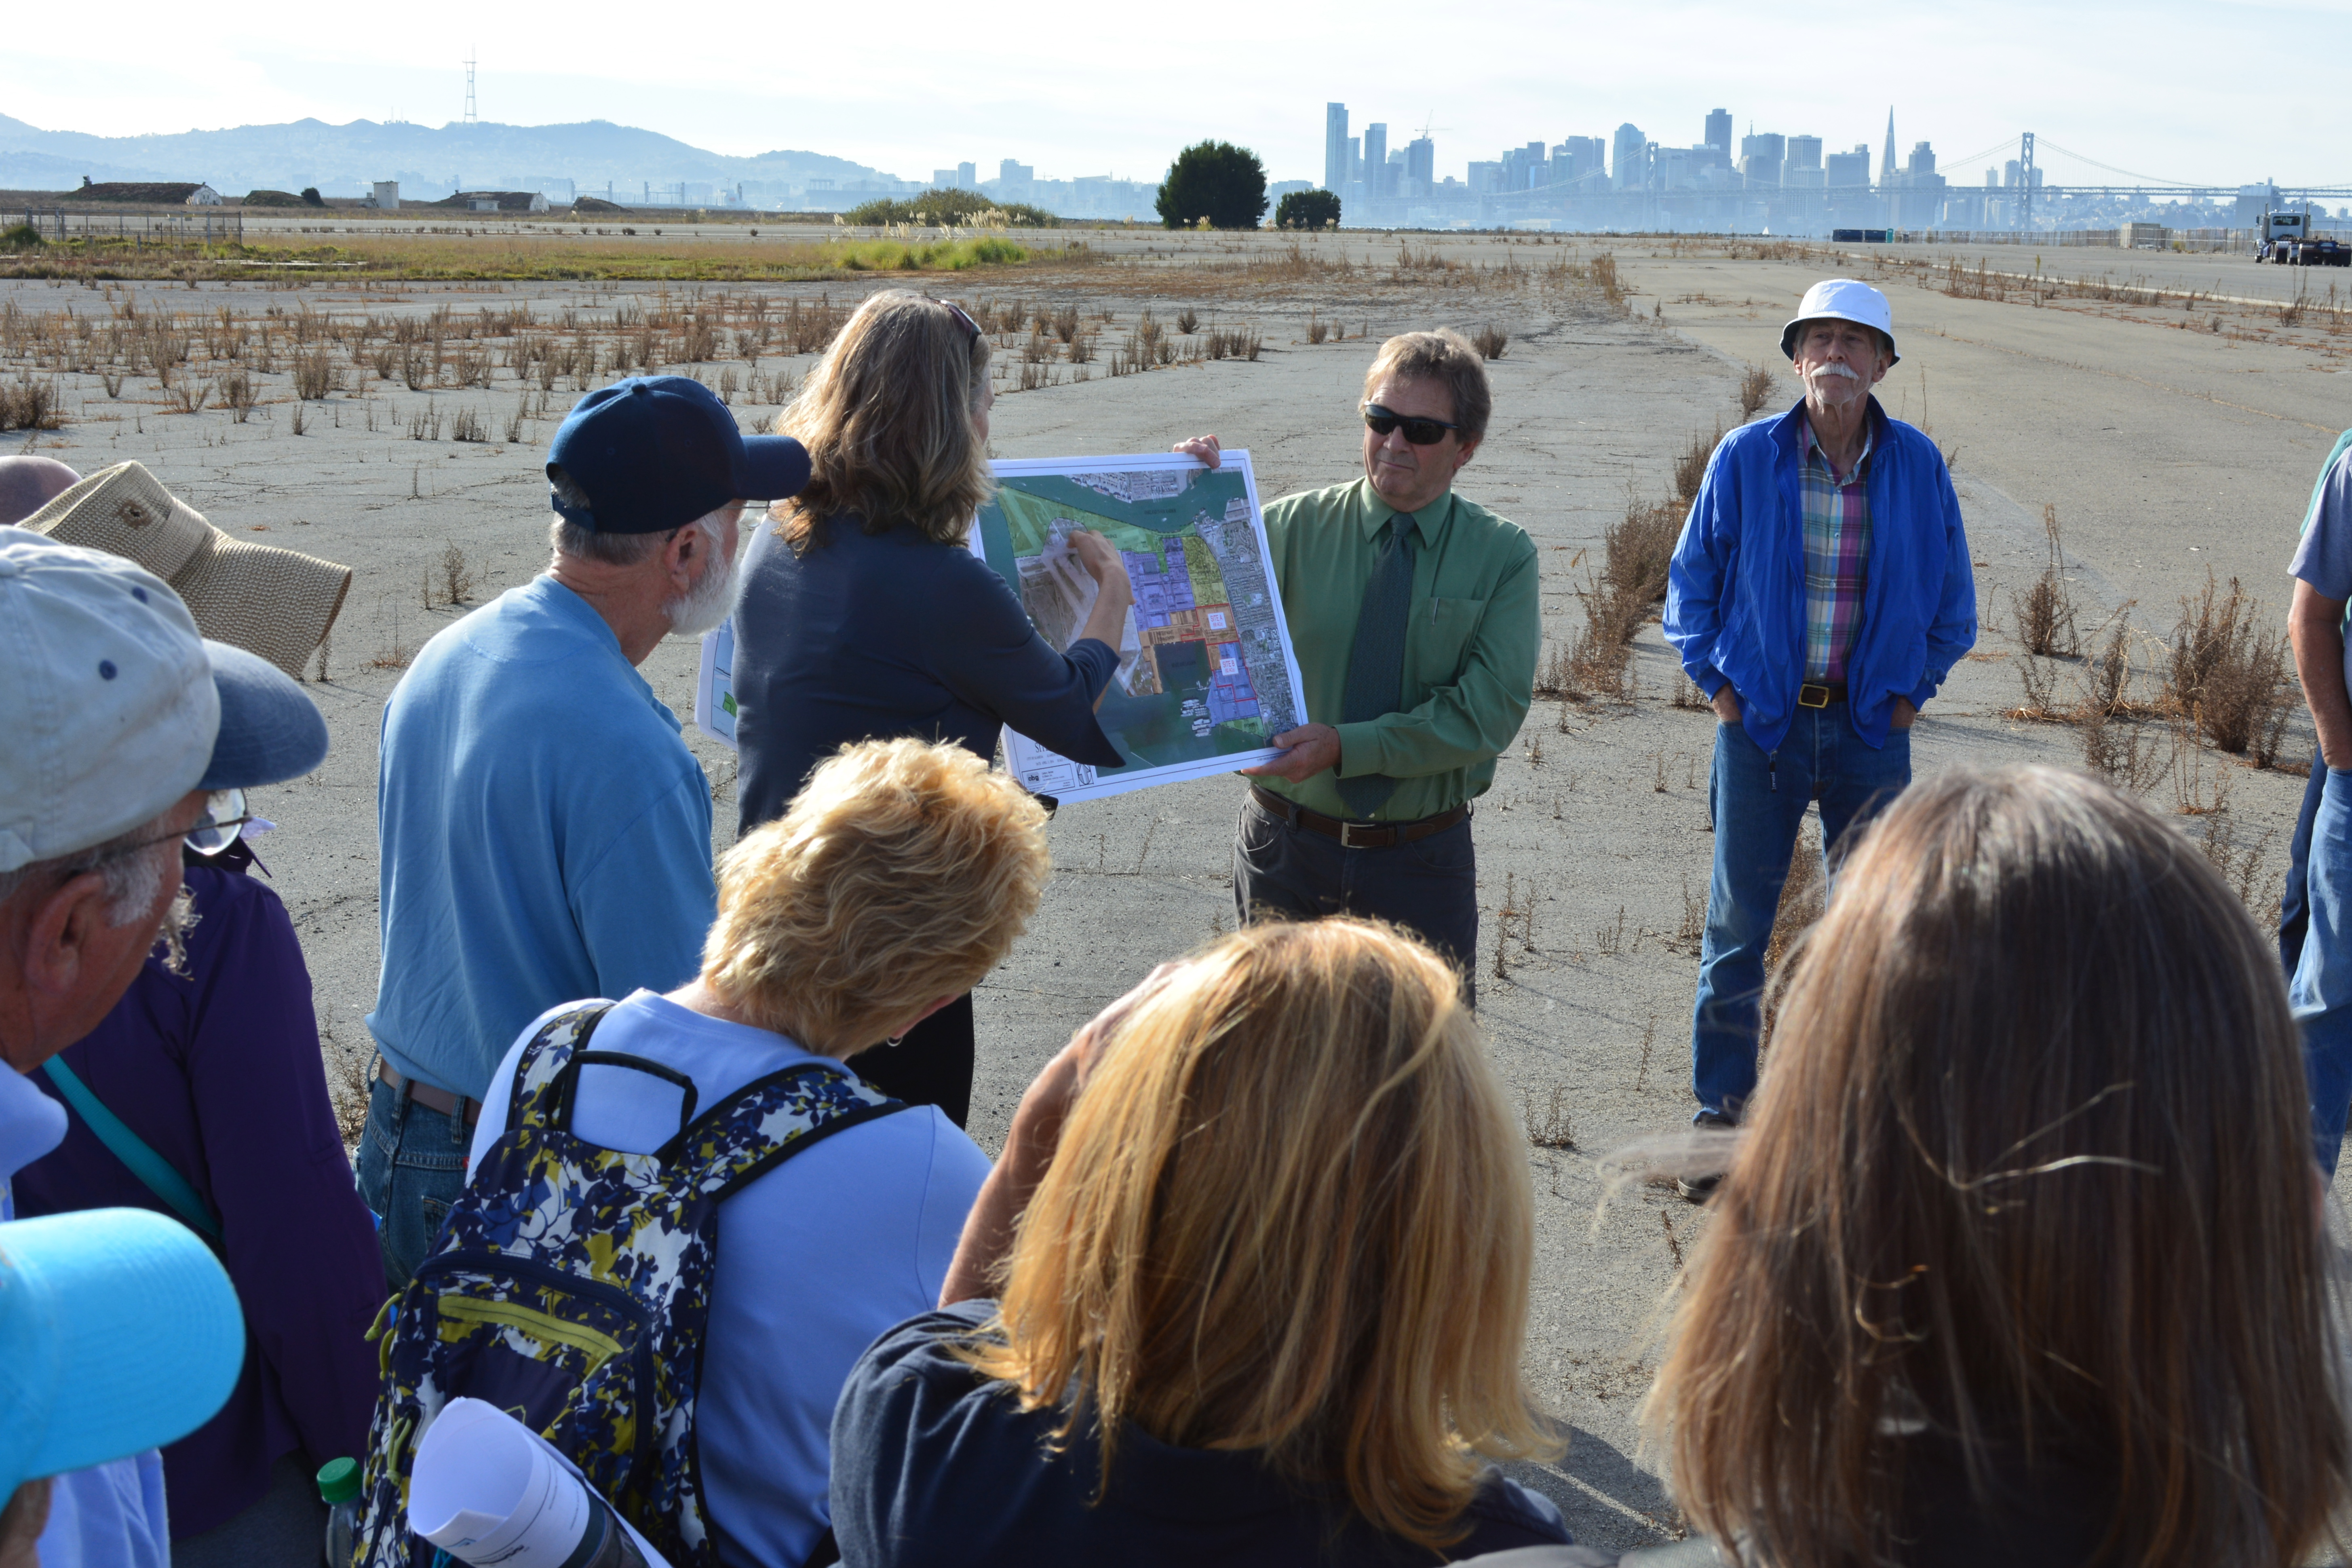 Tour group listening to Jennifer Ott explaining plans of the US Dept. of Veterans Affairs while stopped next to future clinic site. San Francisco skyline in the background.